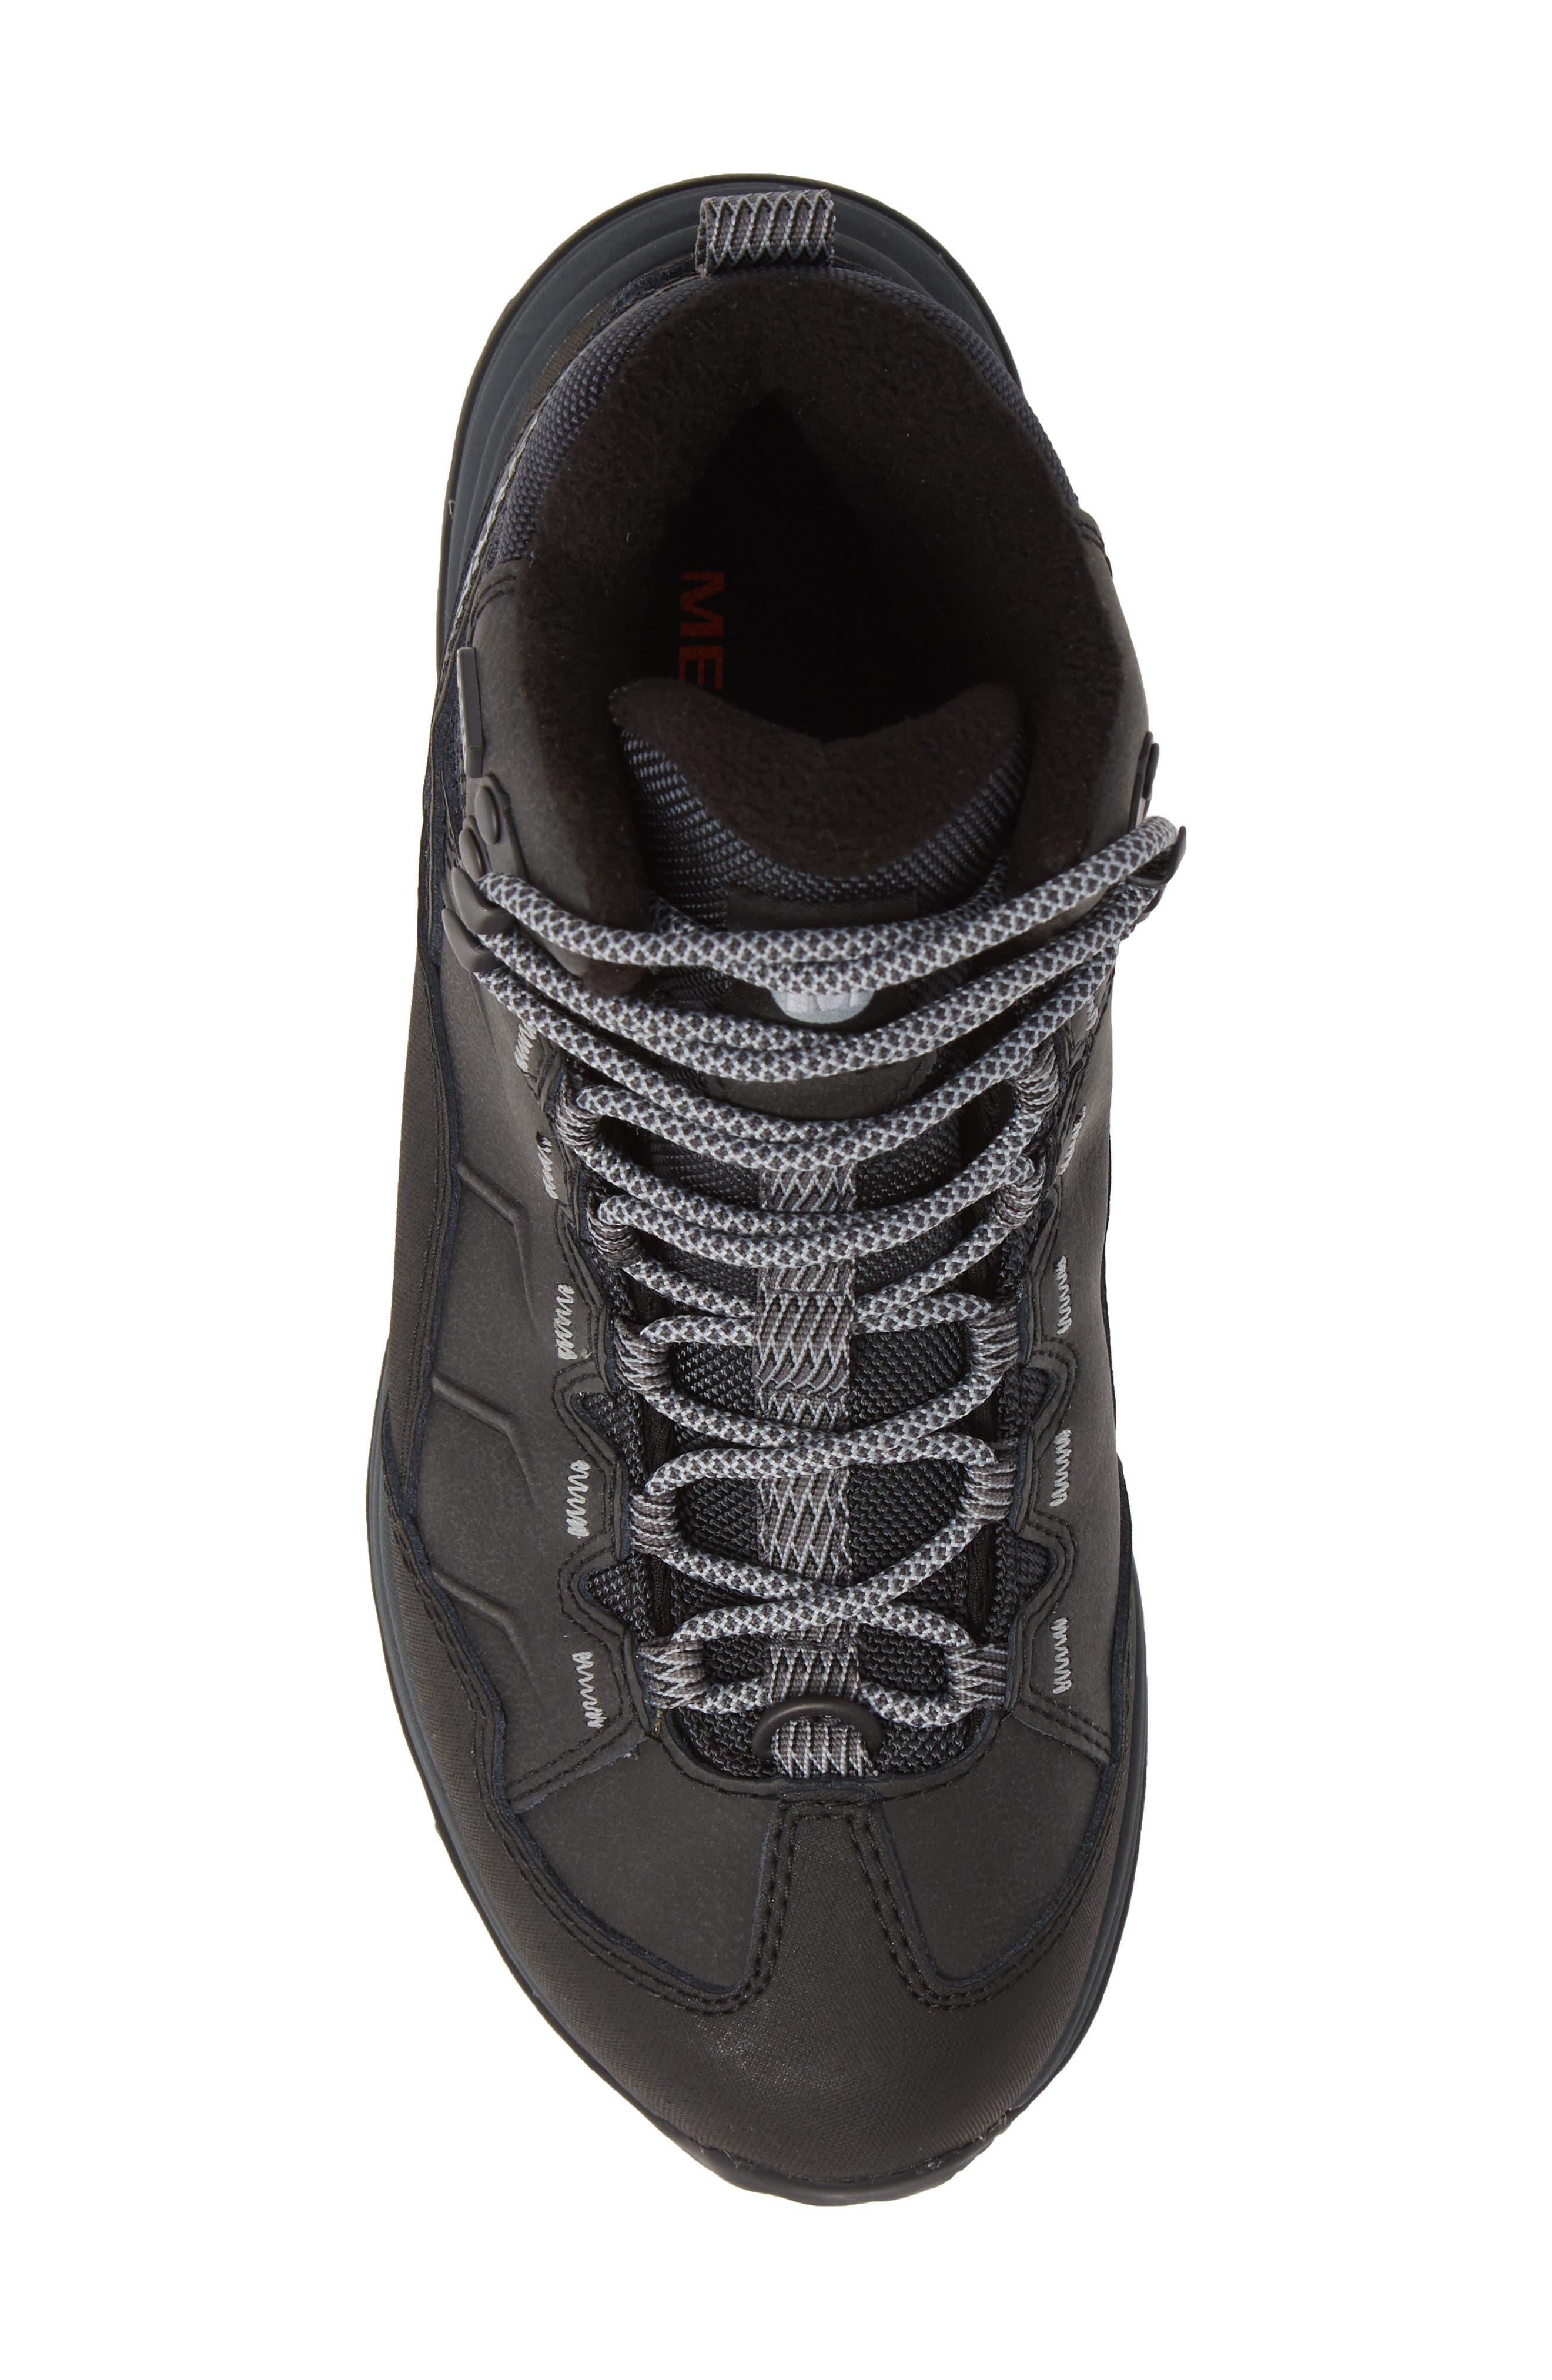 Thermo Chill Waterproof Snow Boot,                             Alternate thumbnail 5, color,                             BLACK LEATHER